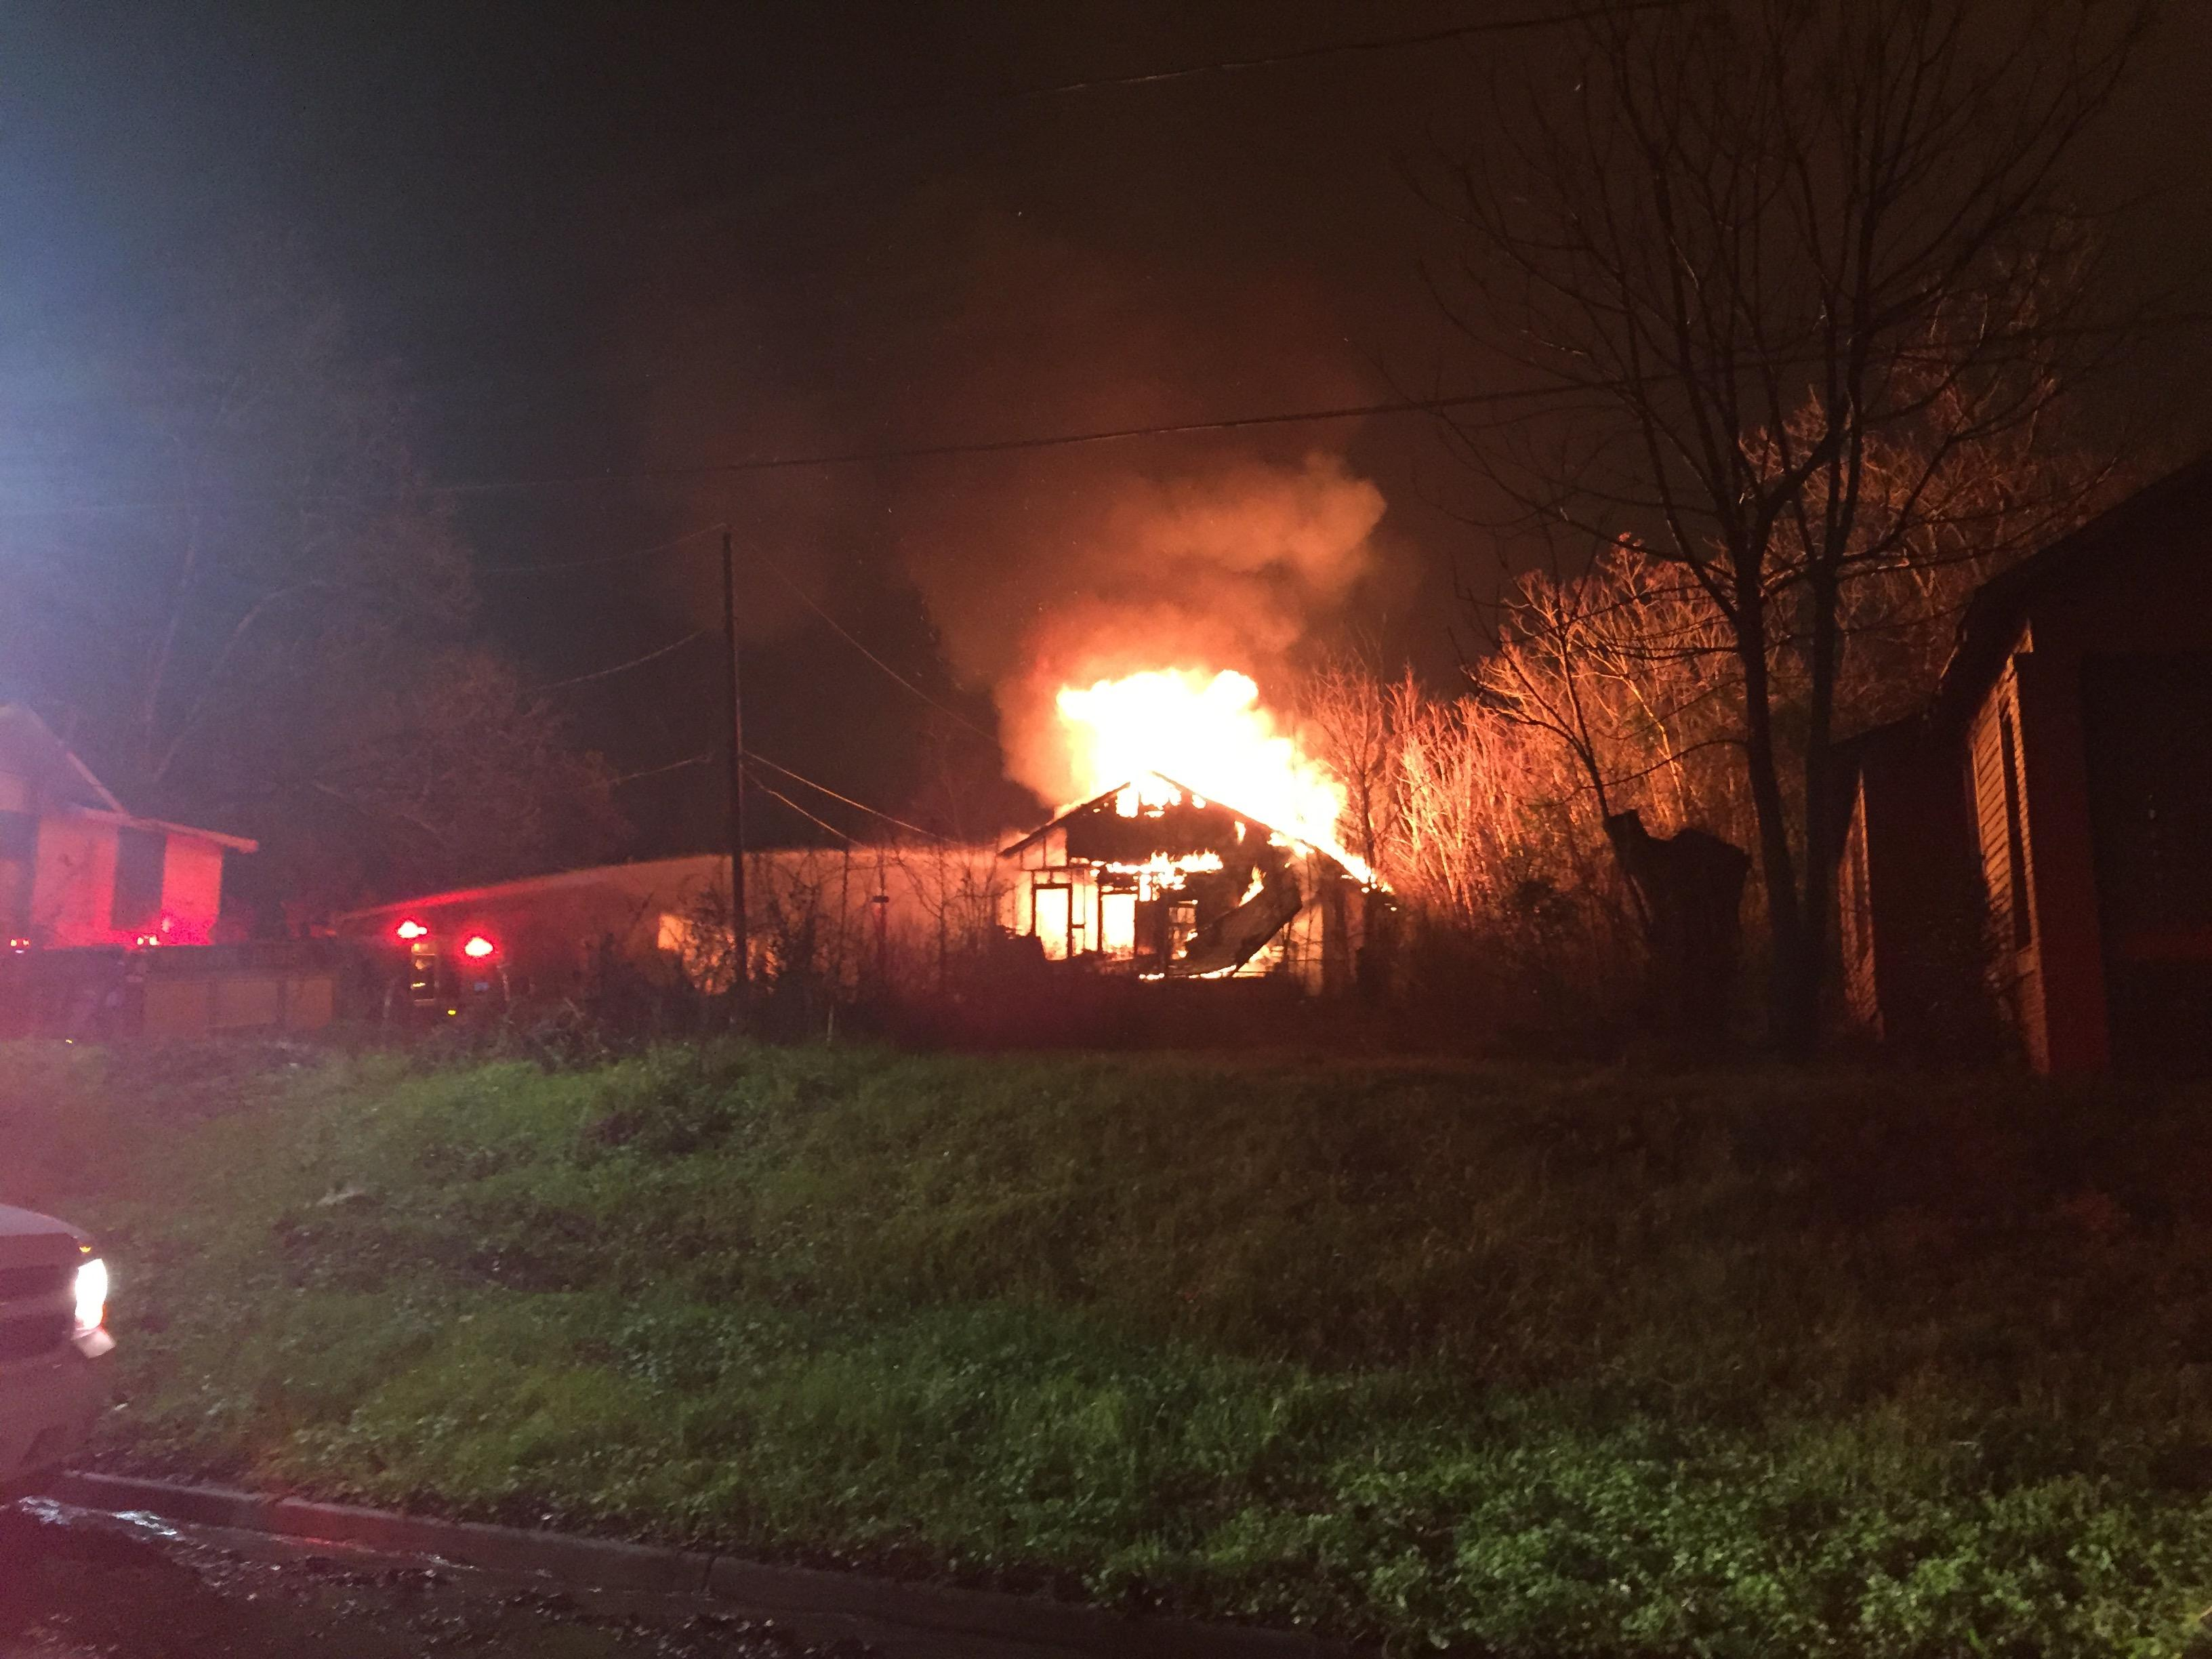 Firefighters battled this house fire on Calhoun St. and Edgewood Ave. Thursday night in Bibb County./David Domingue, WGXA News